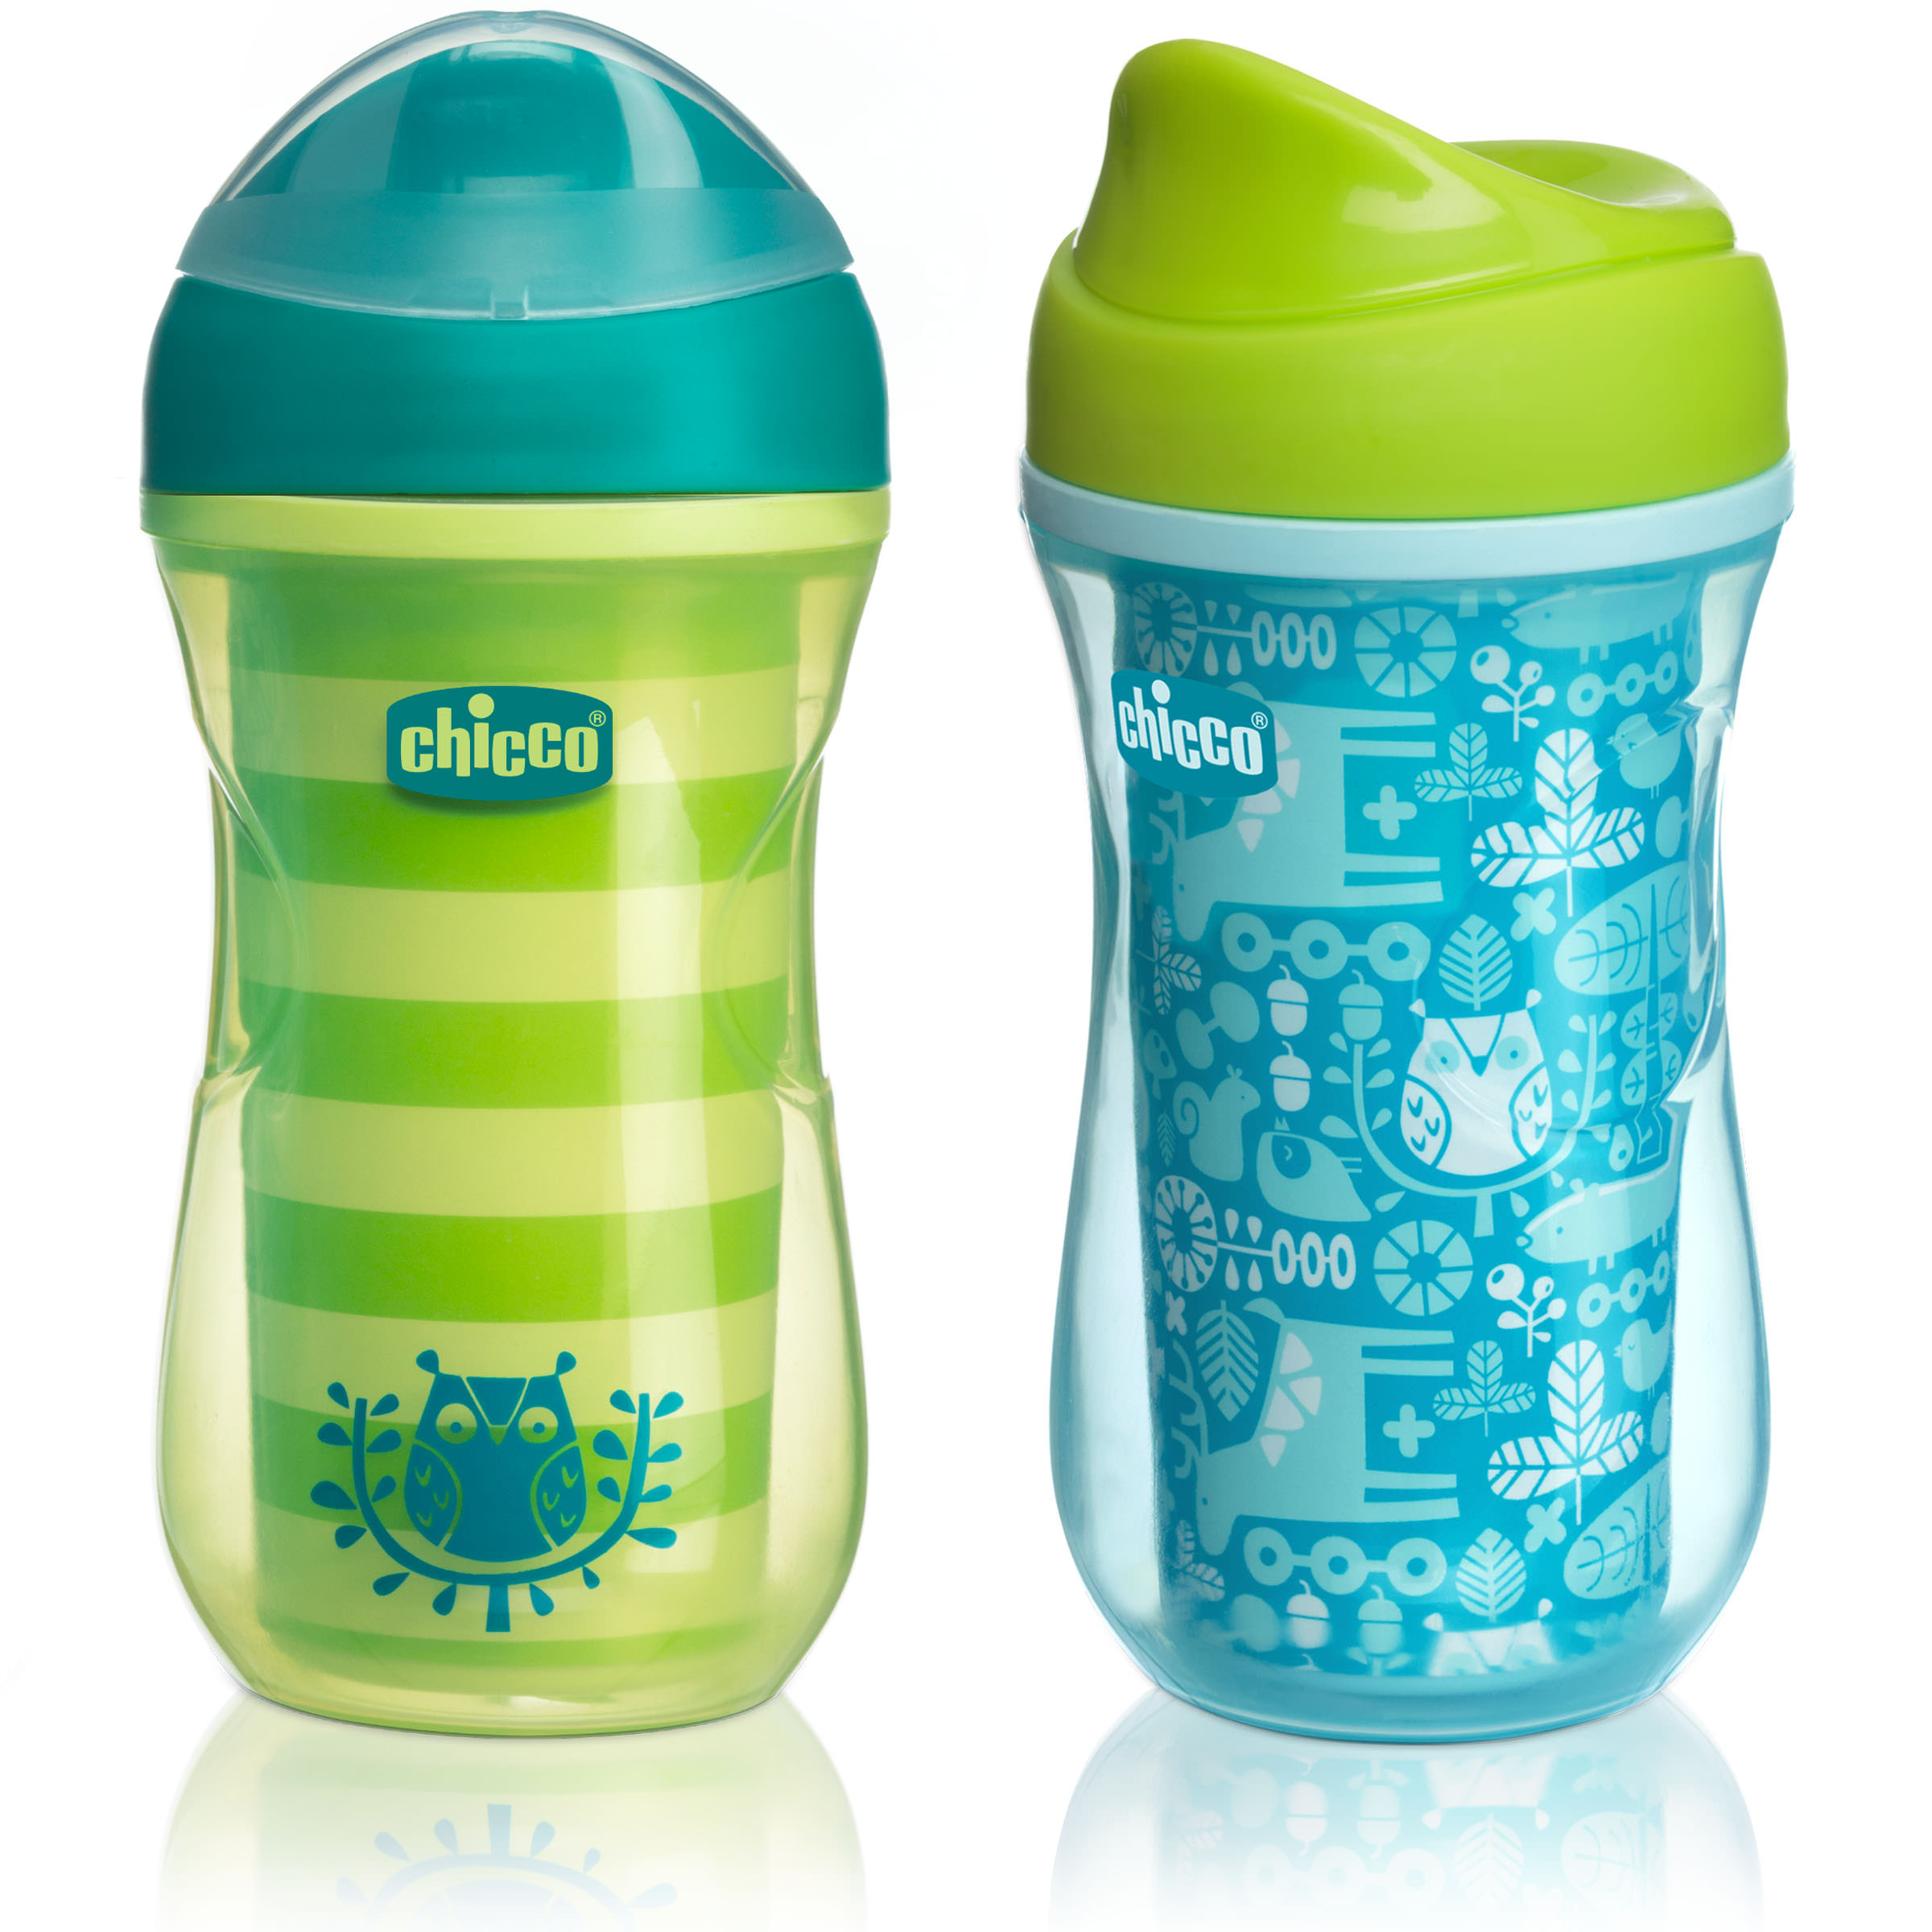 Chicco Insulated No Spill Rim Spout Trainer Sippy Cup 12M+, 9oz Teal/Green 2-Pack